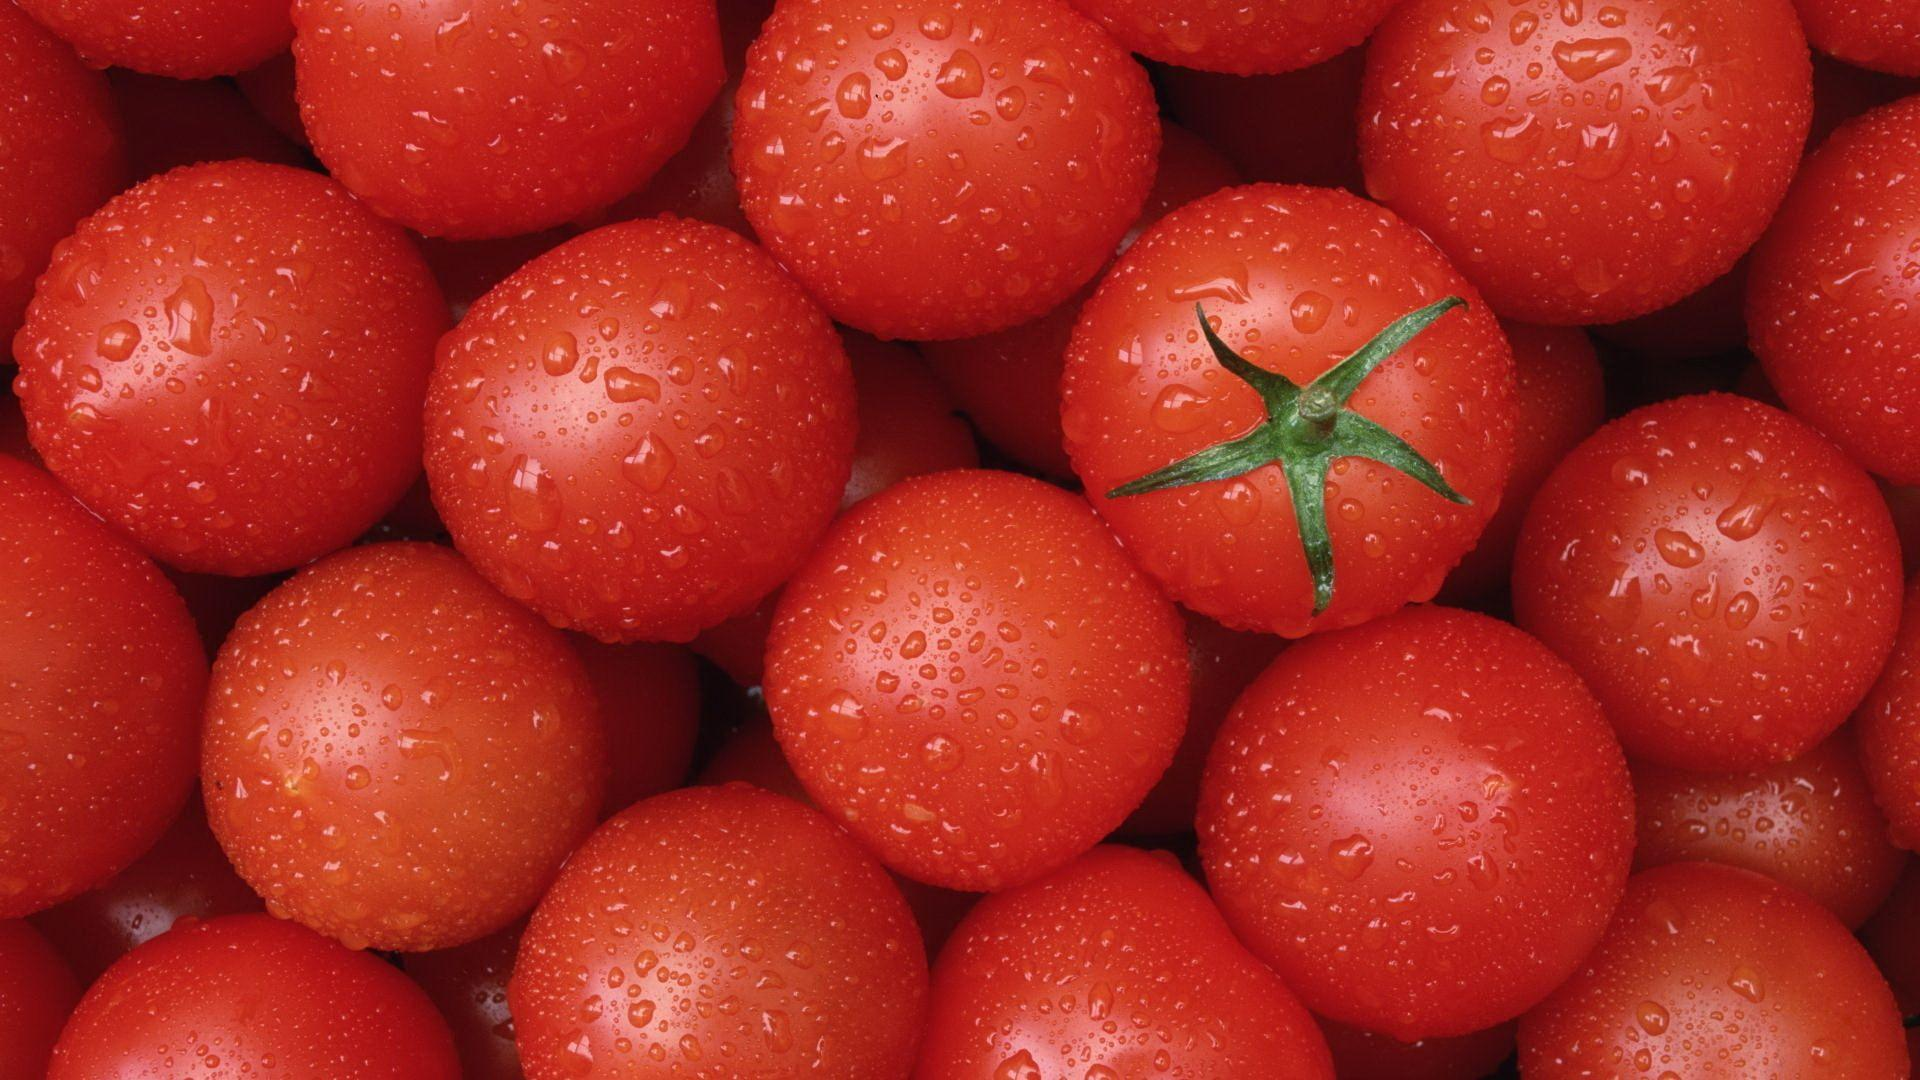 97 Tomato HD Wallpapers